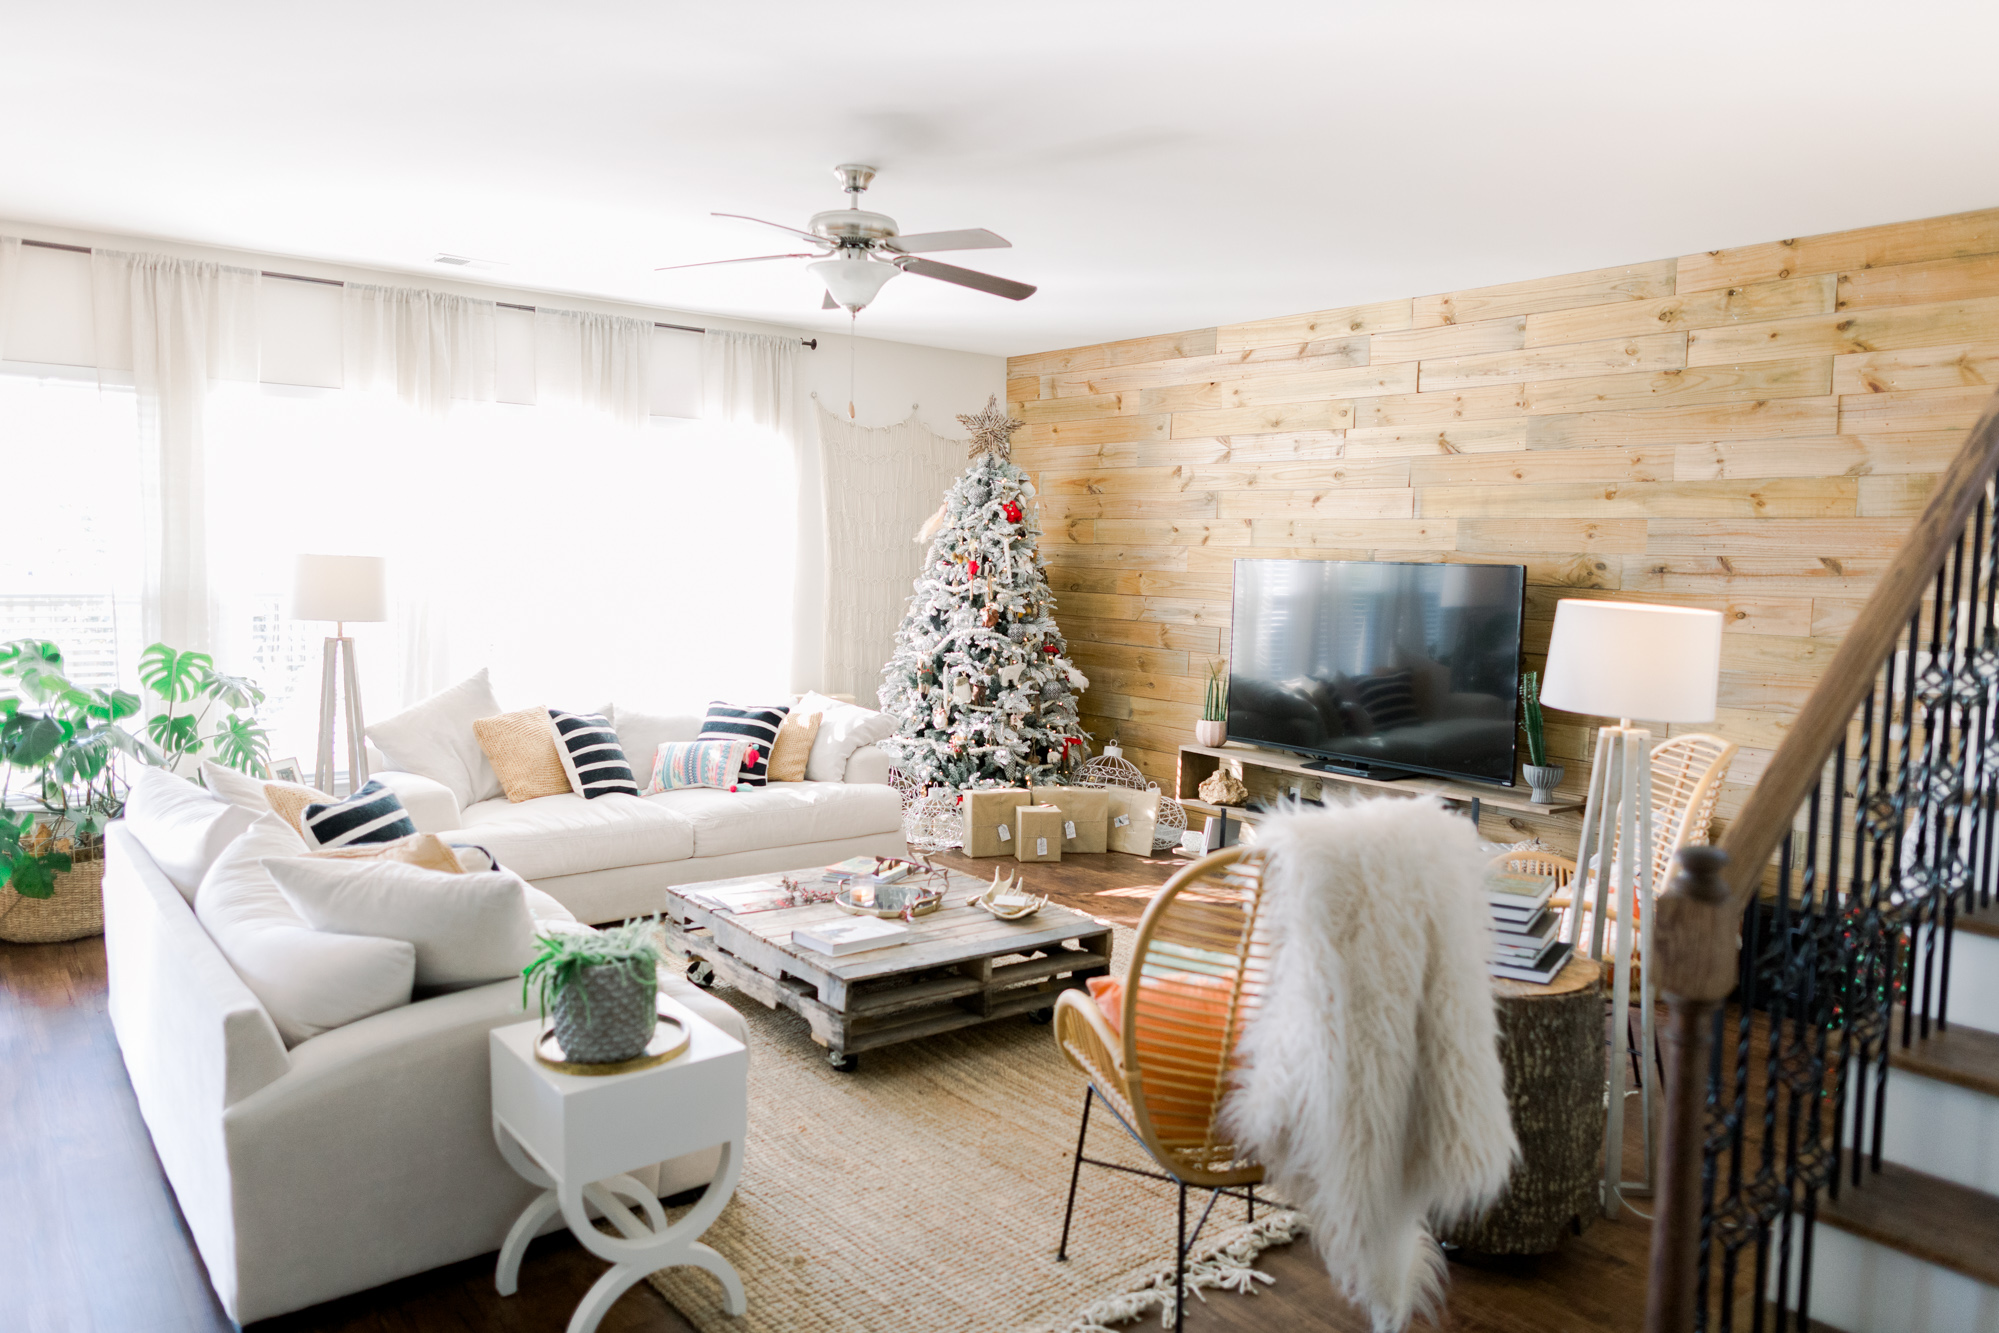 Handy Hints to Help Sell Your Home During the Holidays